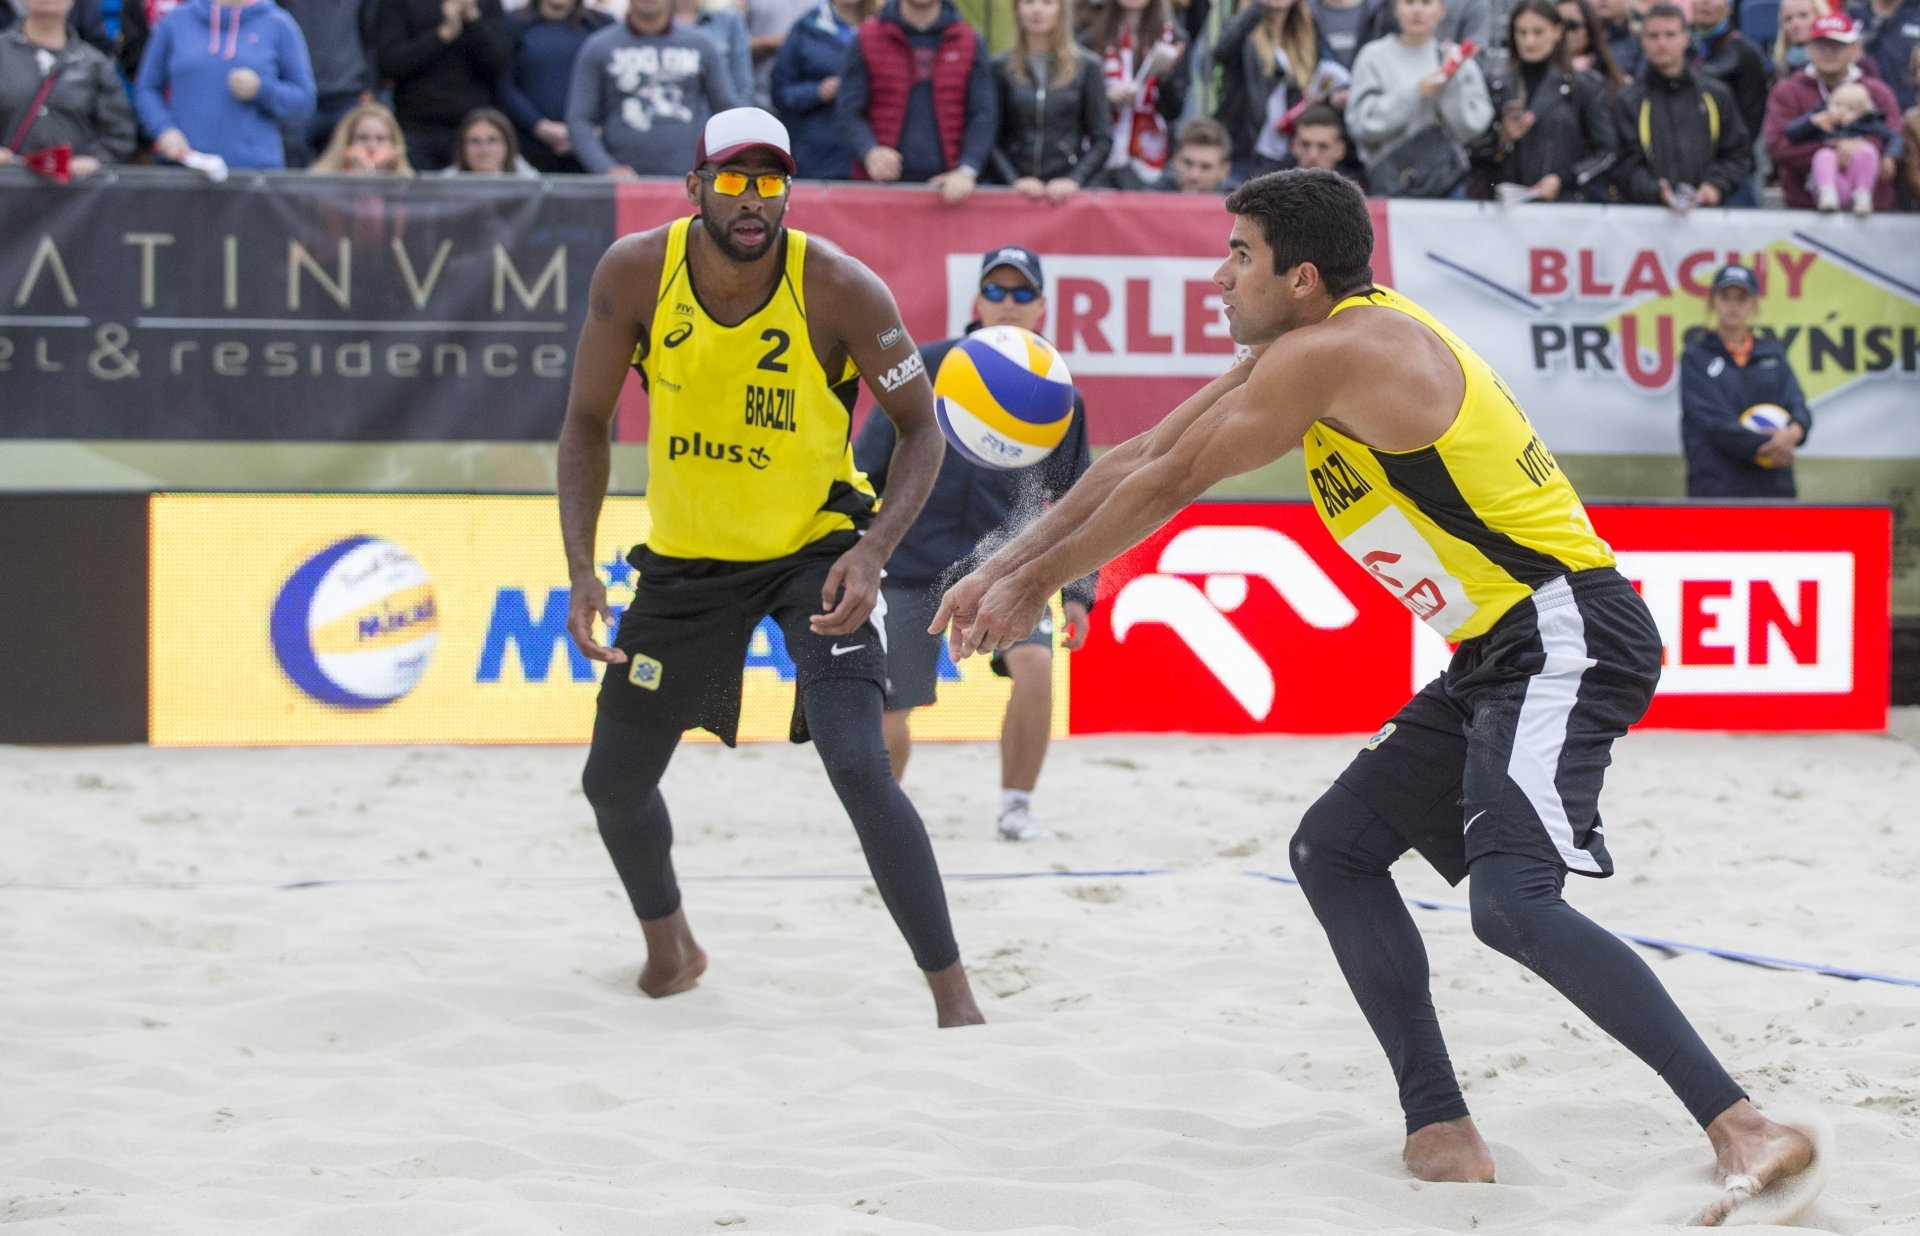 Evandro and Vitor had by far the best start among the new Brazilian teams (Photocredit: FIVB)